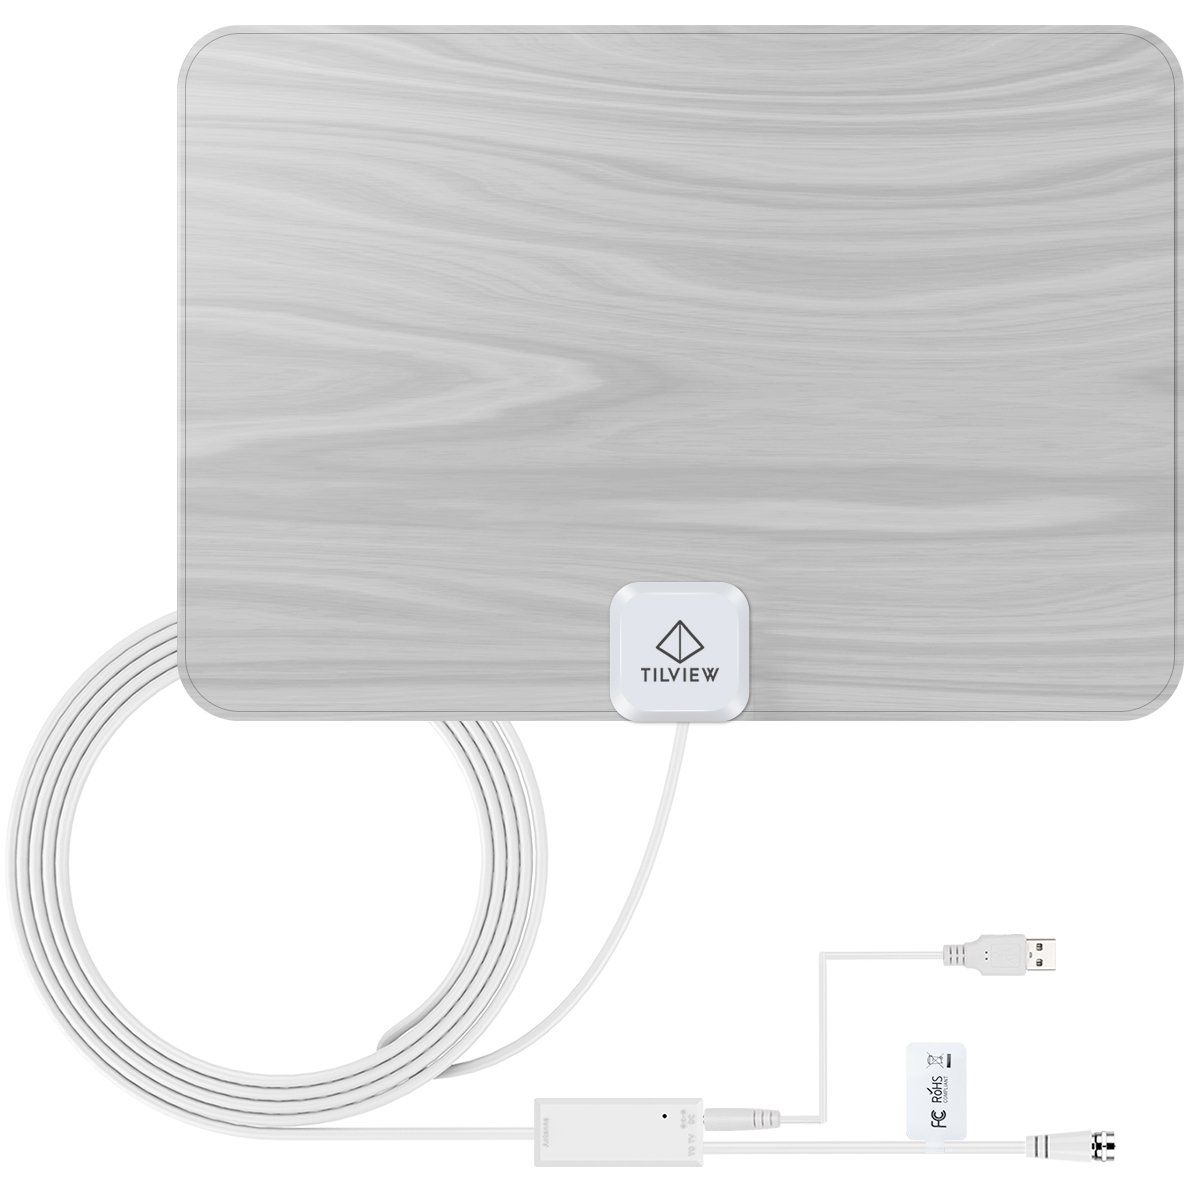 TV Antenna, TILVIEW Amplified HD Digital TV Antenna 50 Miles/80KM Range Ultra-Thin Indoor Amplifier Signal Booster with FM / VHF / UHF Reception 20ft/6M Coaxial Cable with 5ft/1.5M USB Power Cable